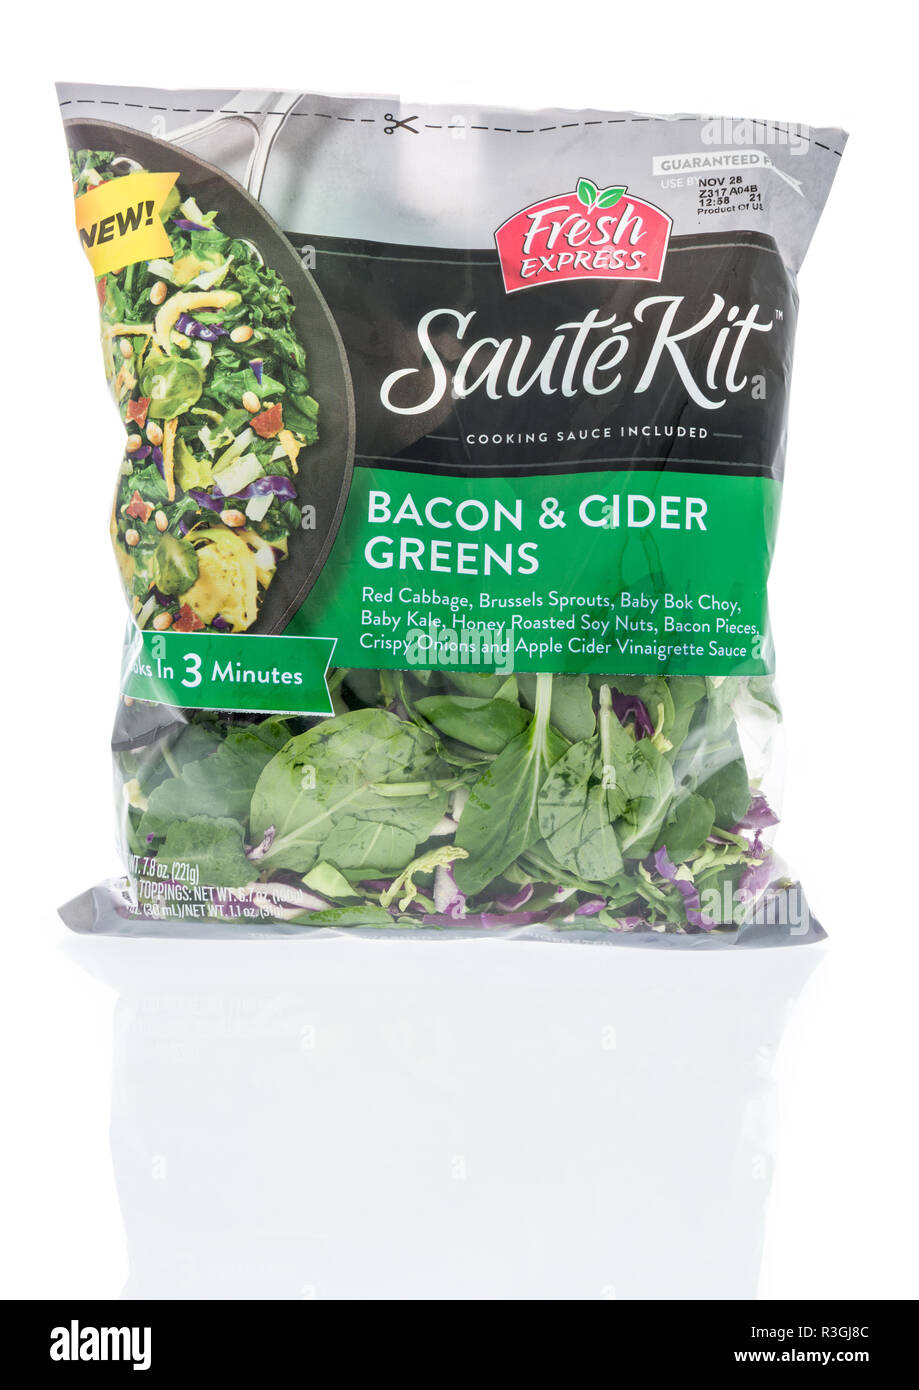 Winneconne, WI - 21 November 2018: A package of Fresh Express Saute Kit bacon and cider greens on an isolated background. - Stock Image